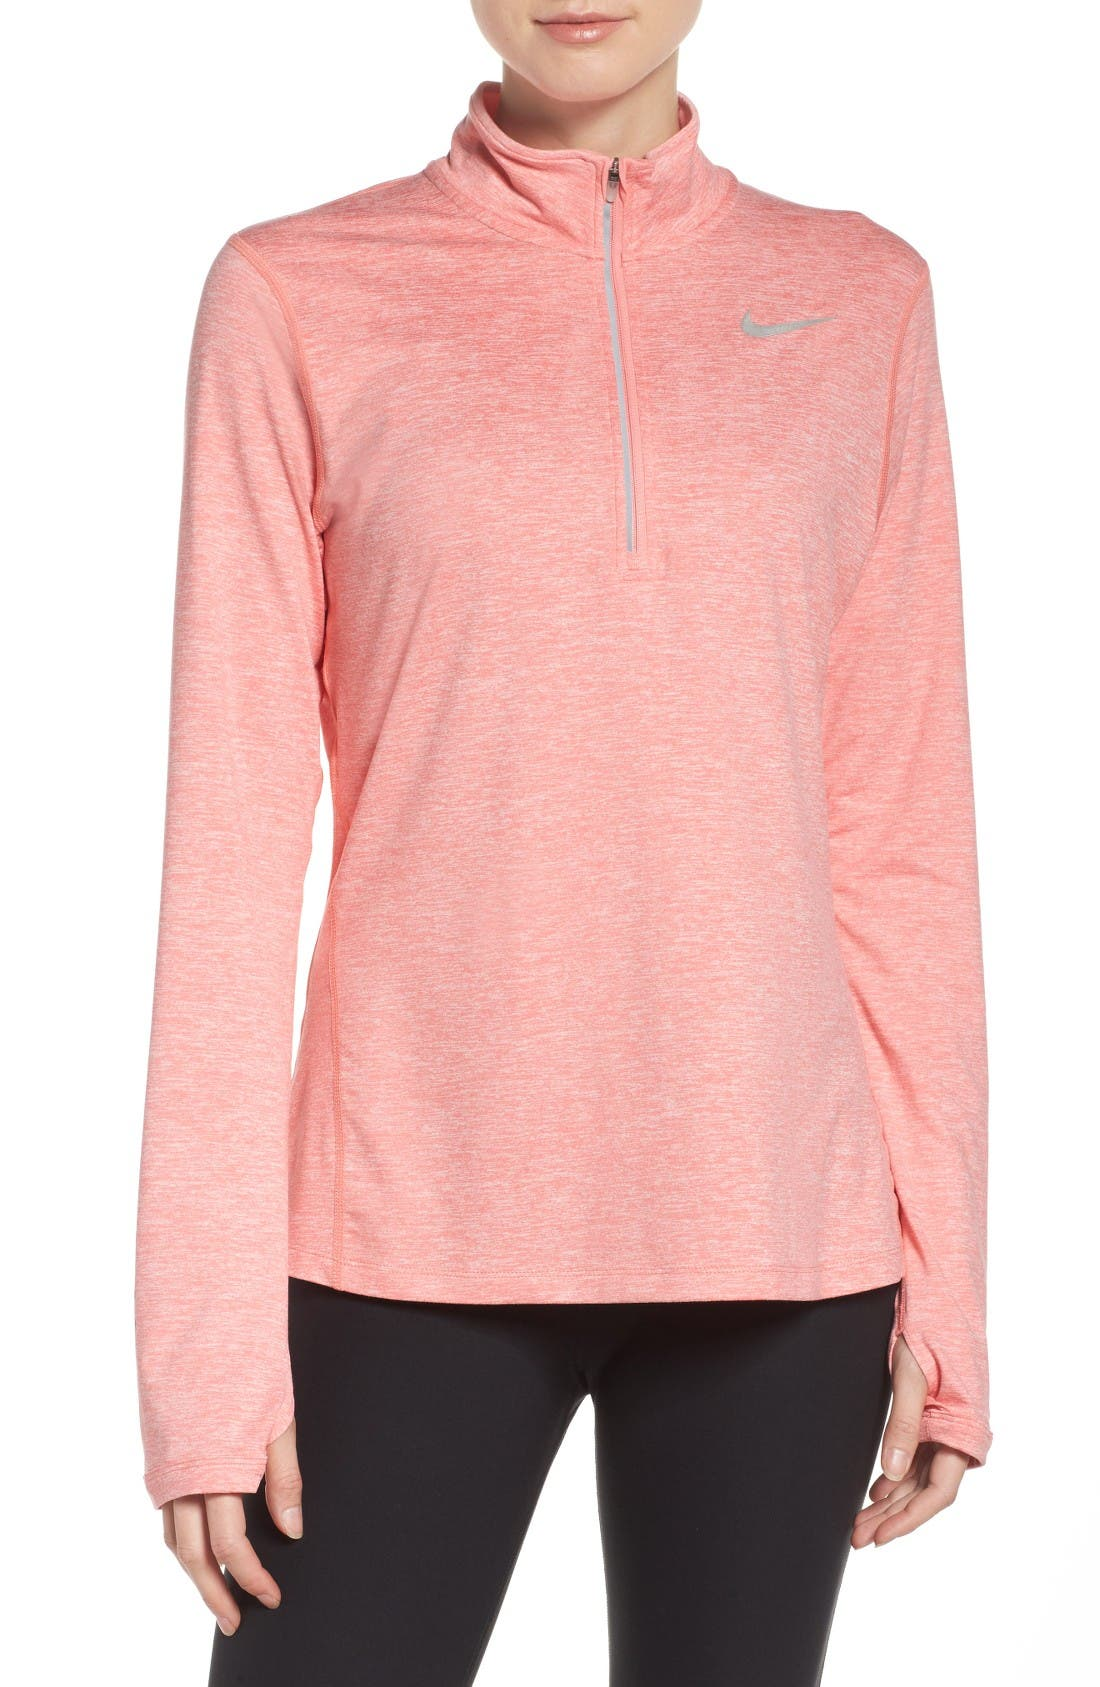 NIKE Element Dri-FIT Half Zip Performance Top